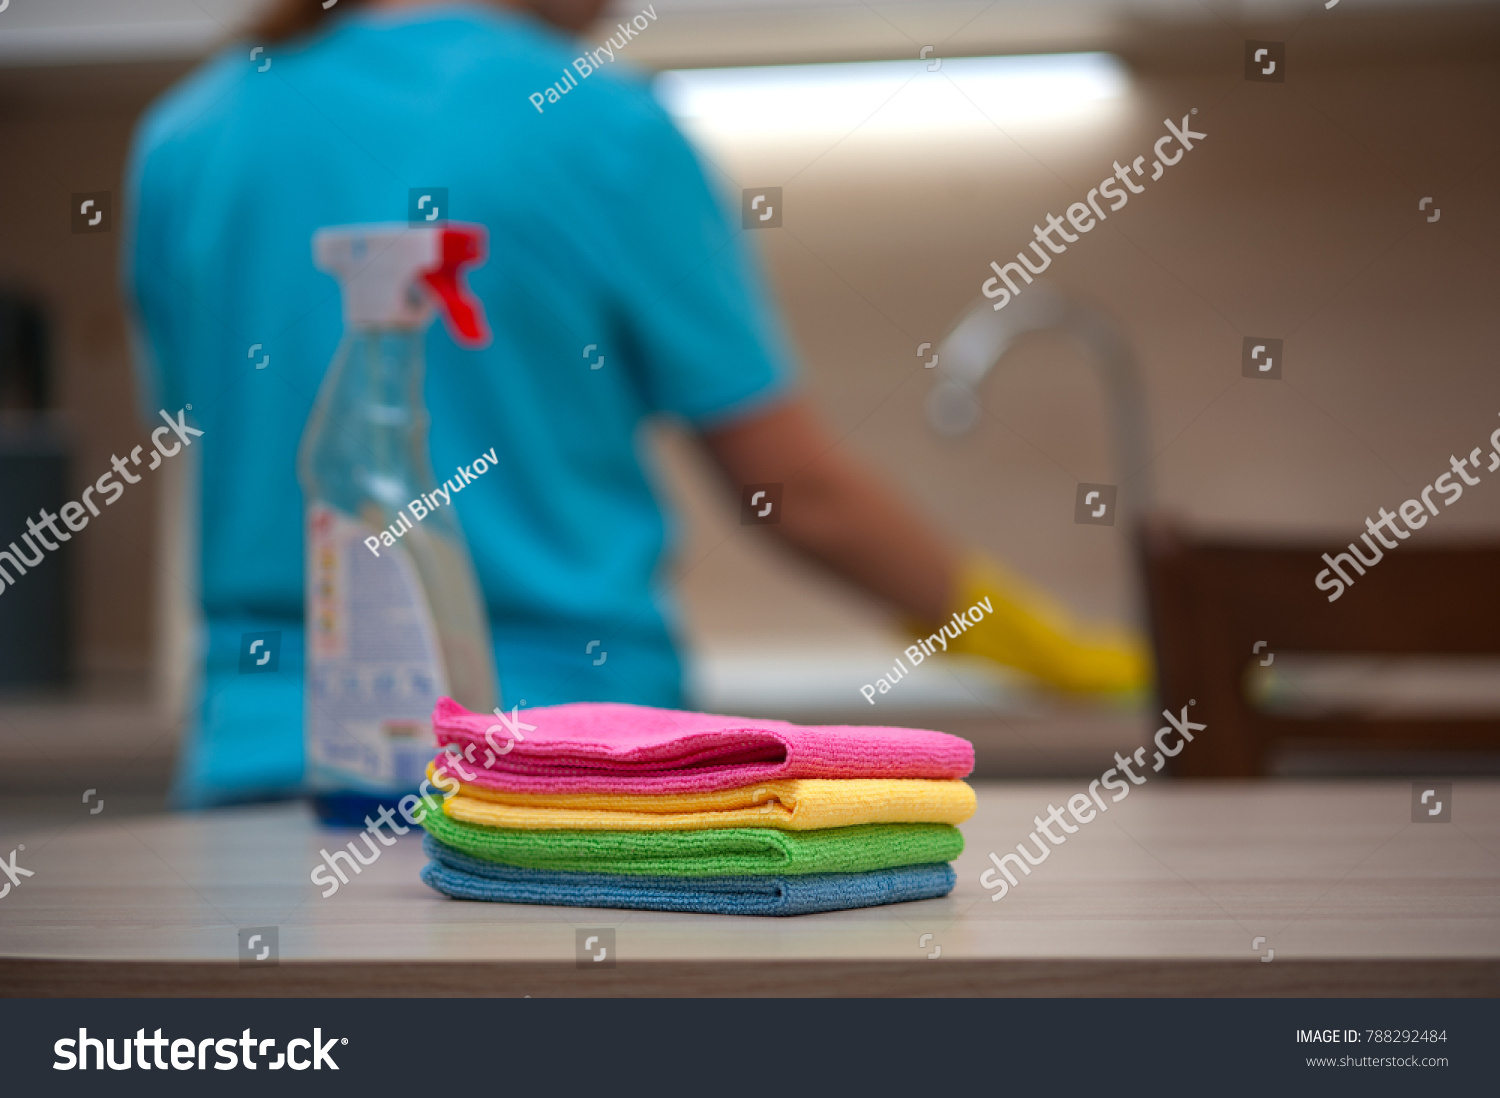 House Cleaning Stack Rags Cleaning Liquid Stock Photo (Royalty Free ...